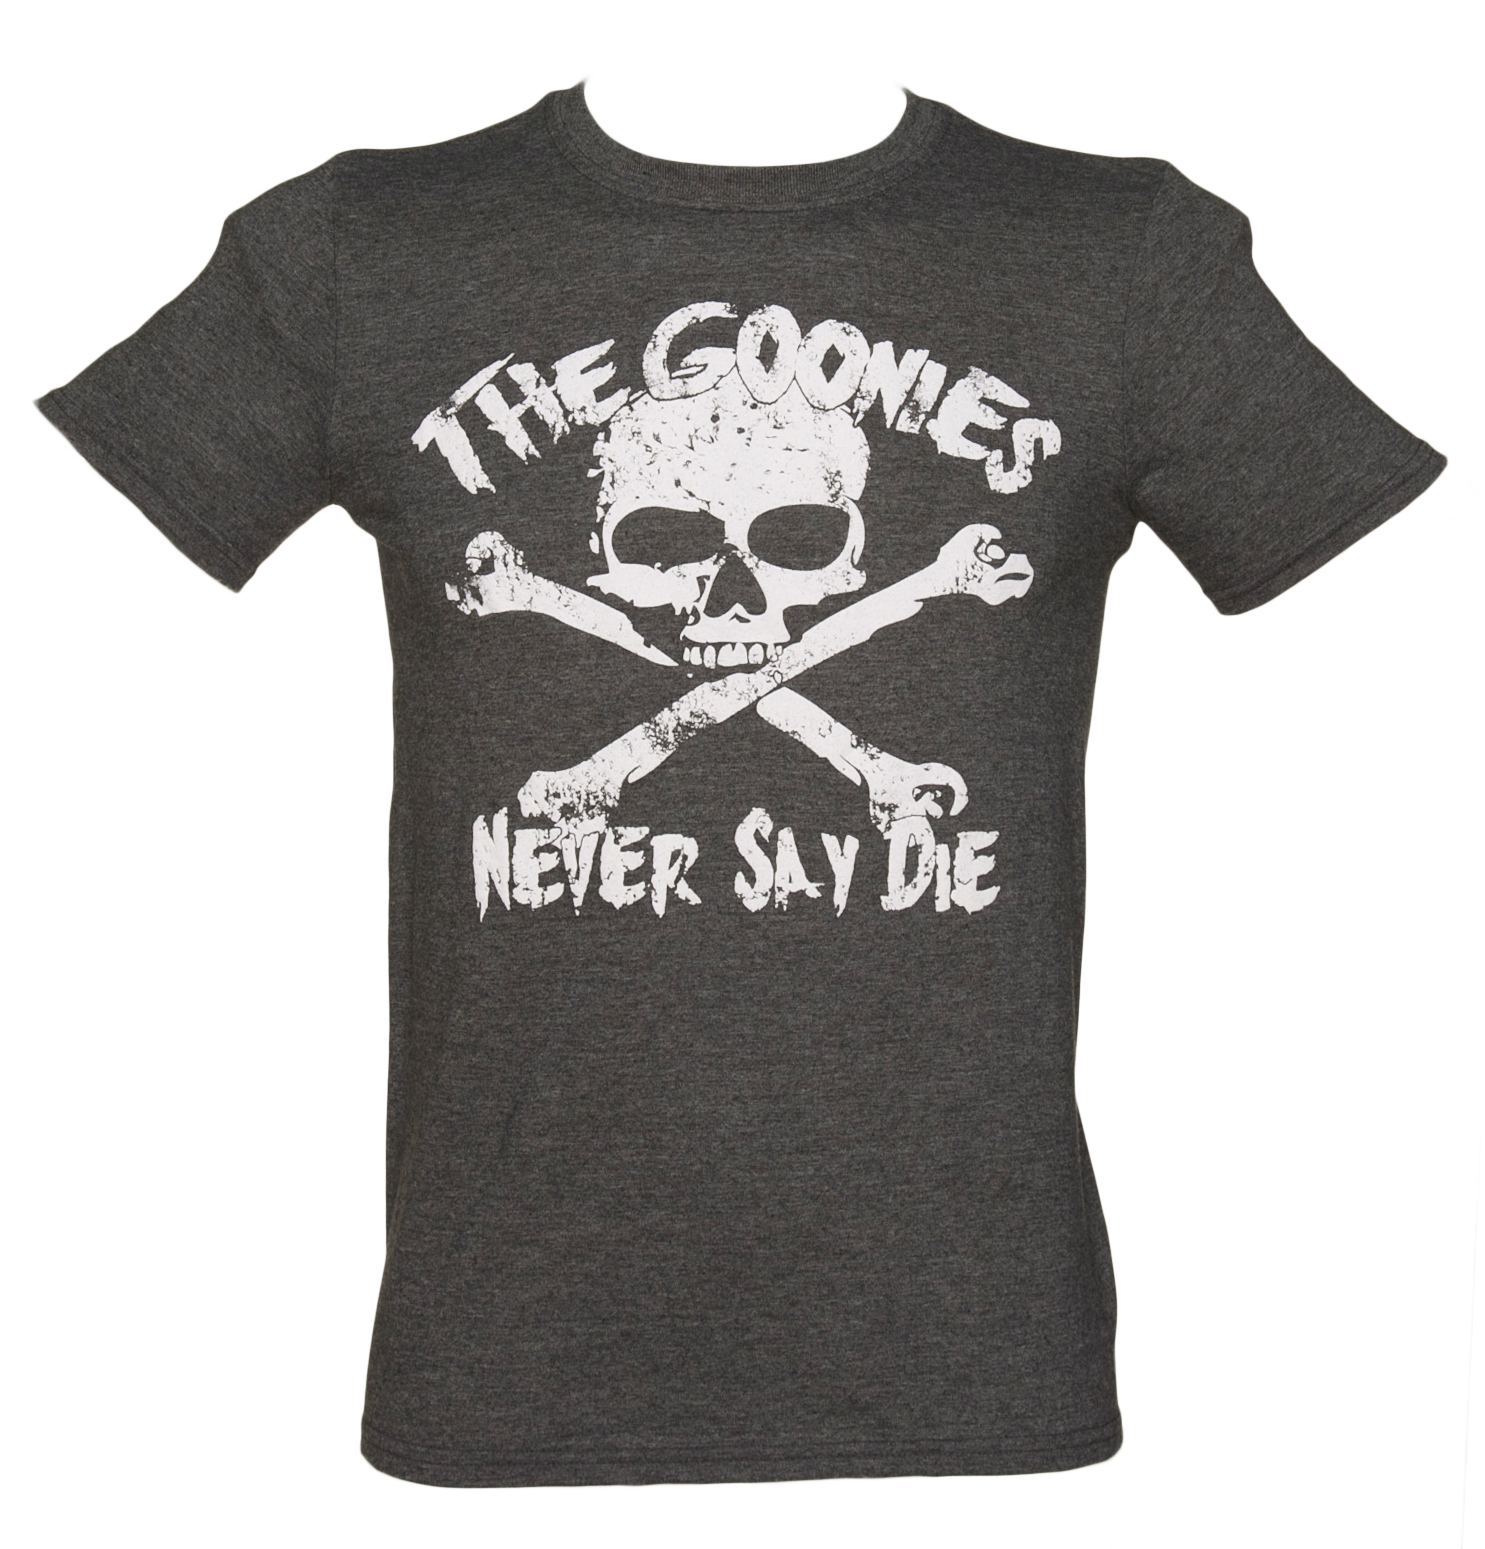 Mens Charcoal Goonies Never Say Die T-Shirt